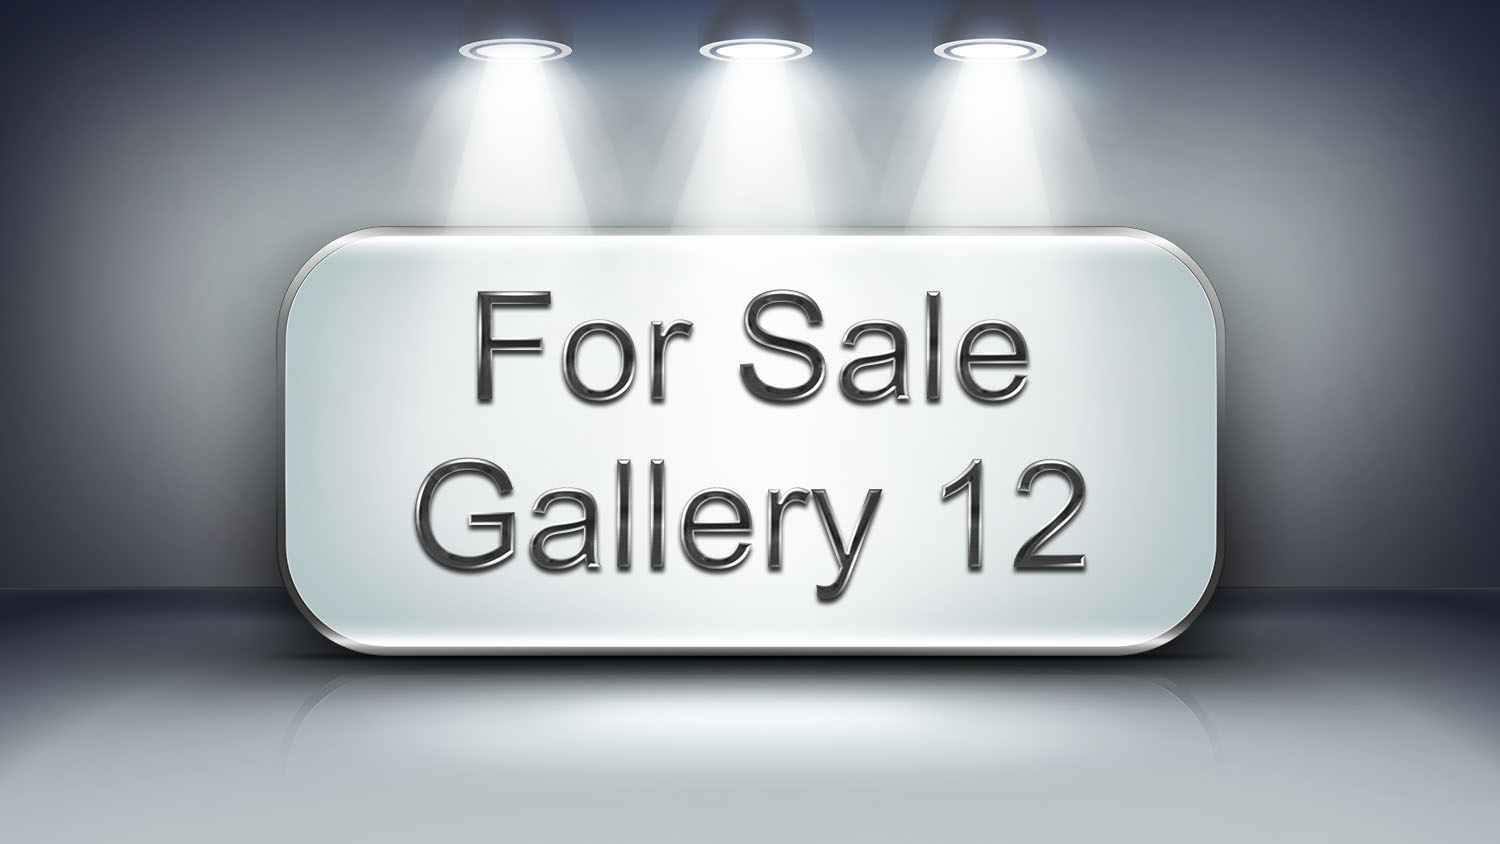 For Sale Gallery 12